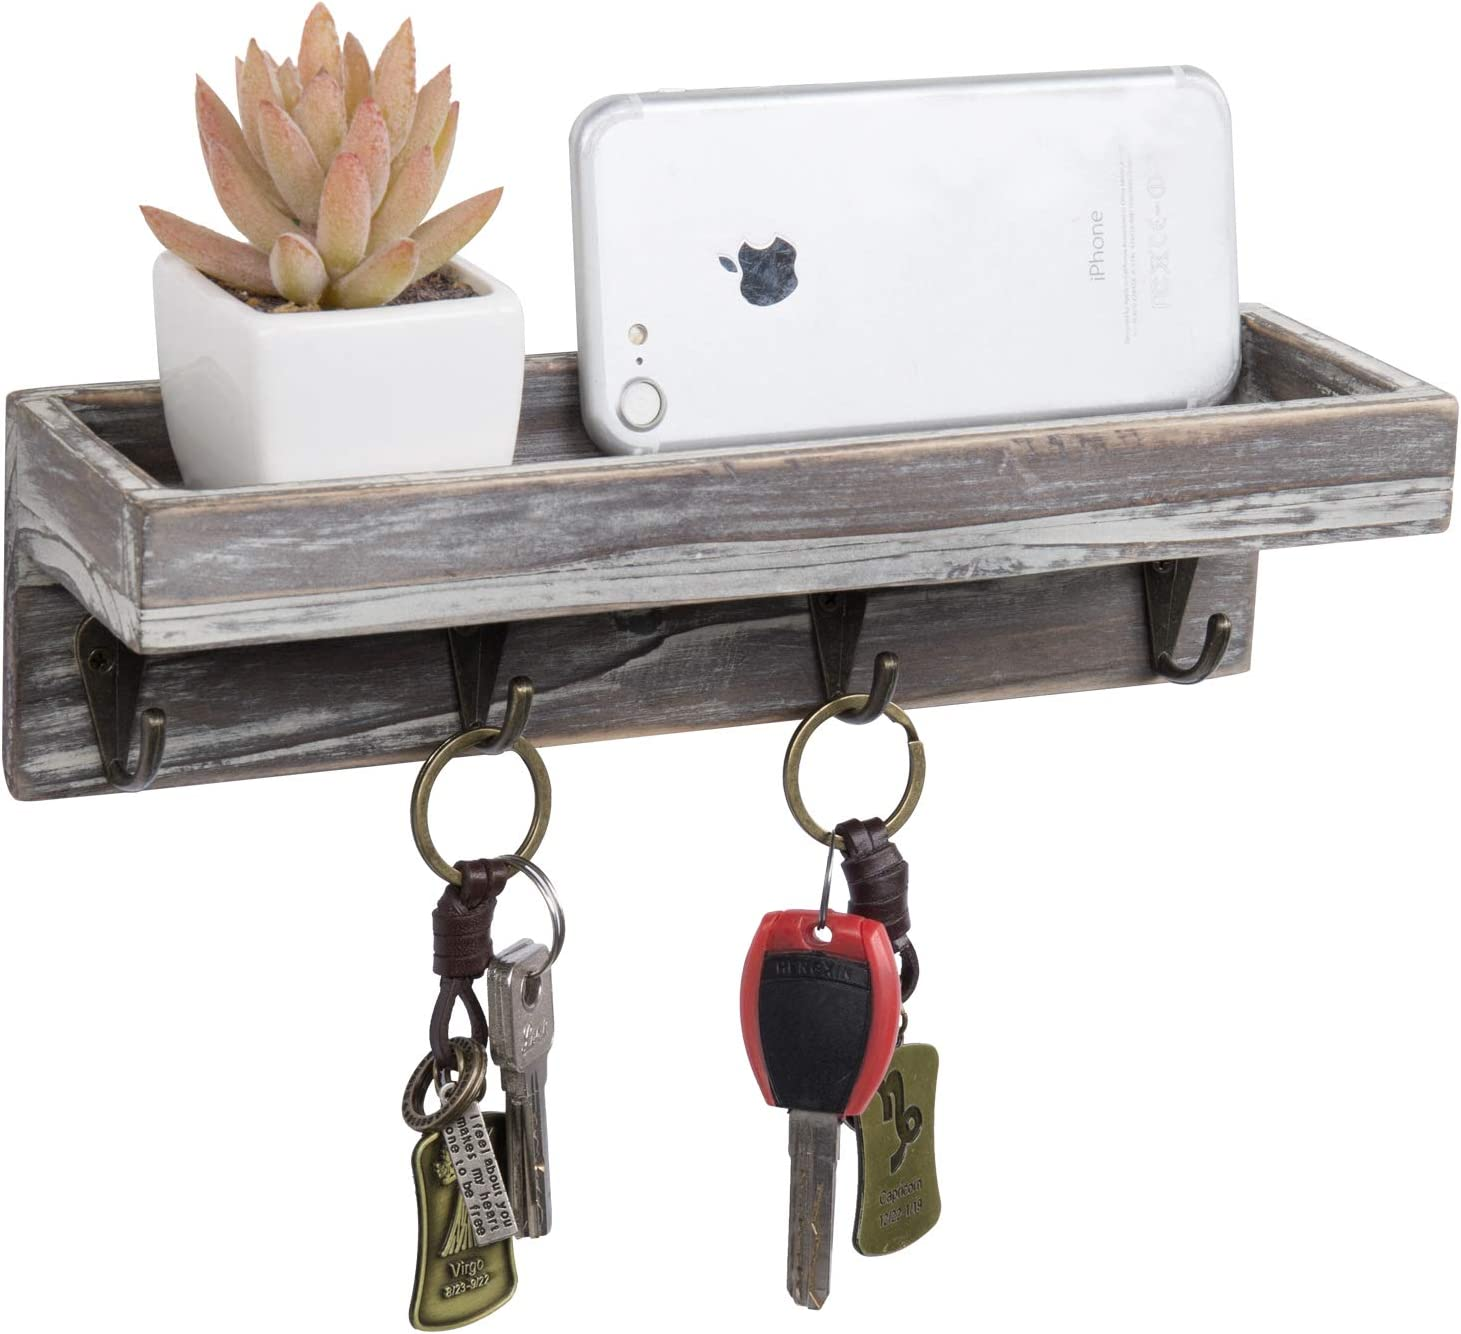 MyGift Rustic Torched Wood Small Wall-Mounted Entryway Shelf with 4 Vintage Key Hooks